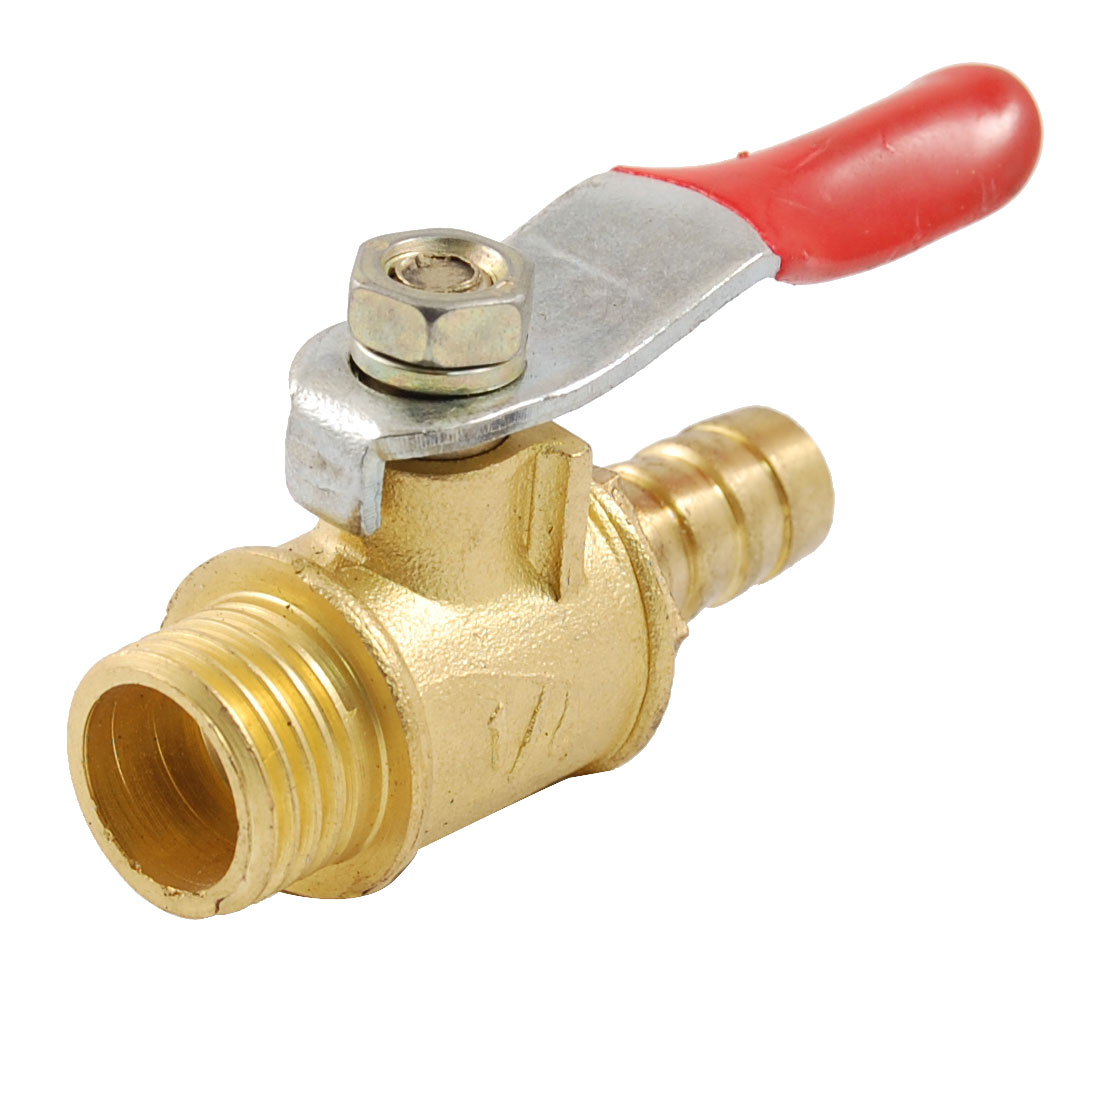 "Pneumatic Fitting 1/4"" PT M Thread to 3/10"" Hose Tail Ball Valve"